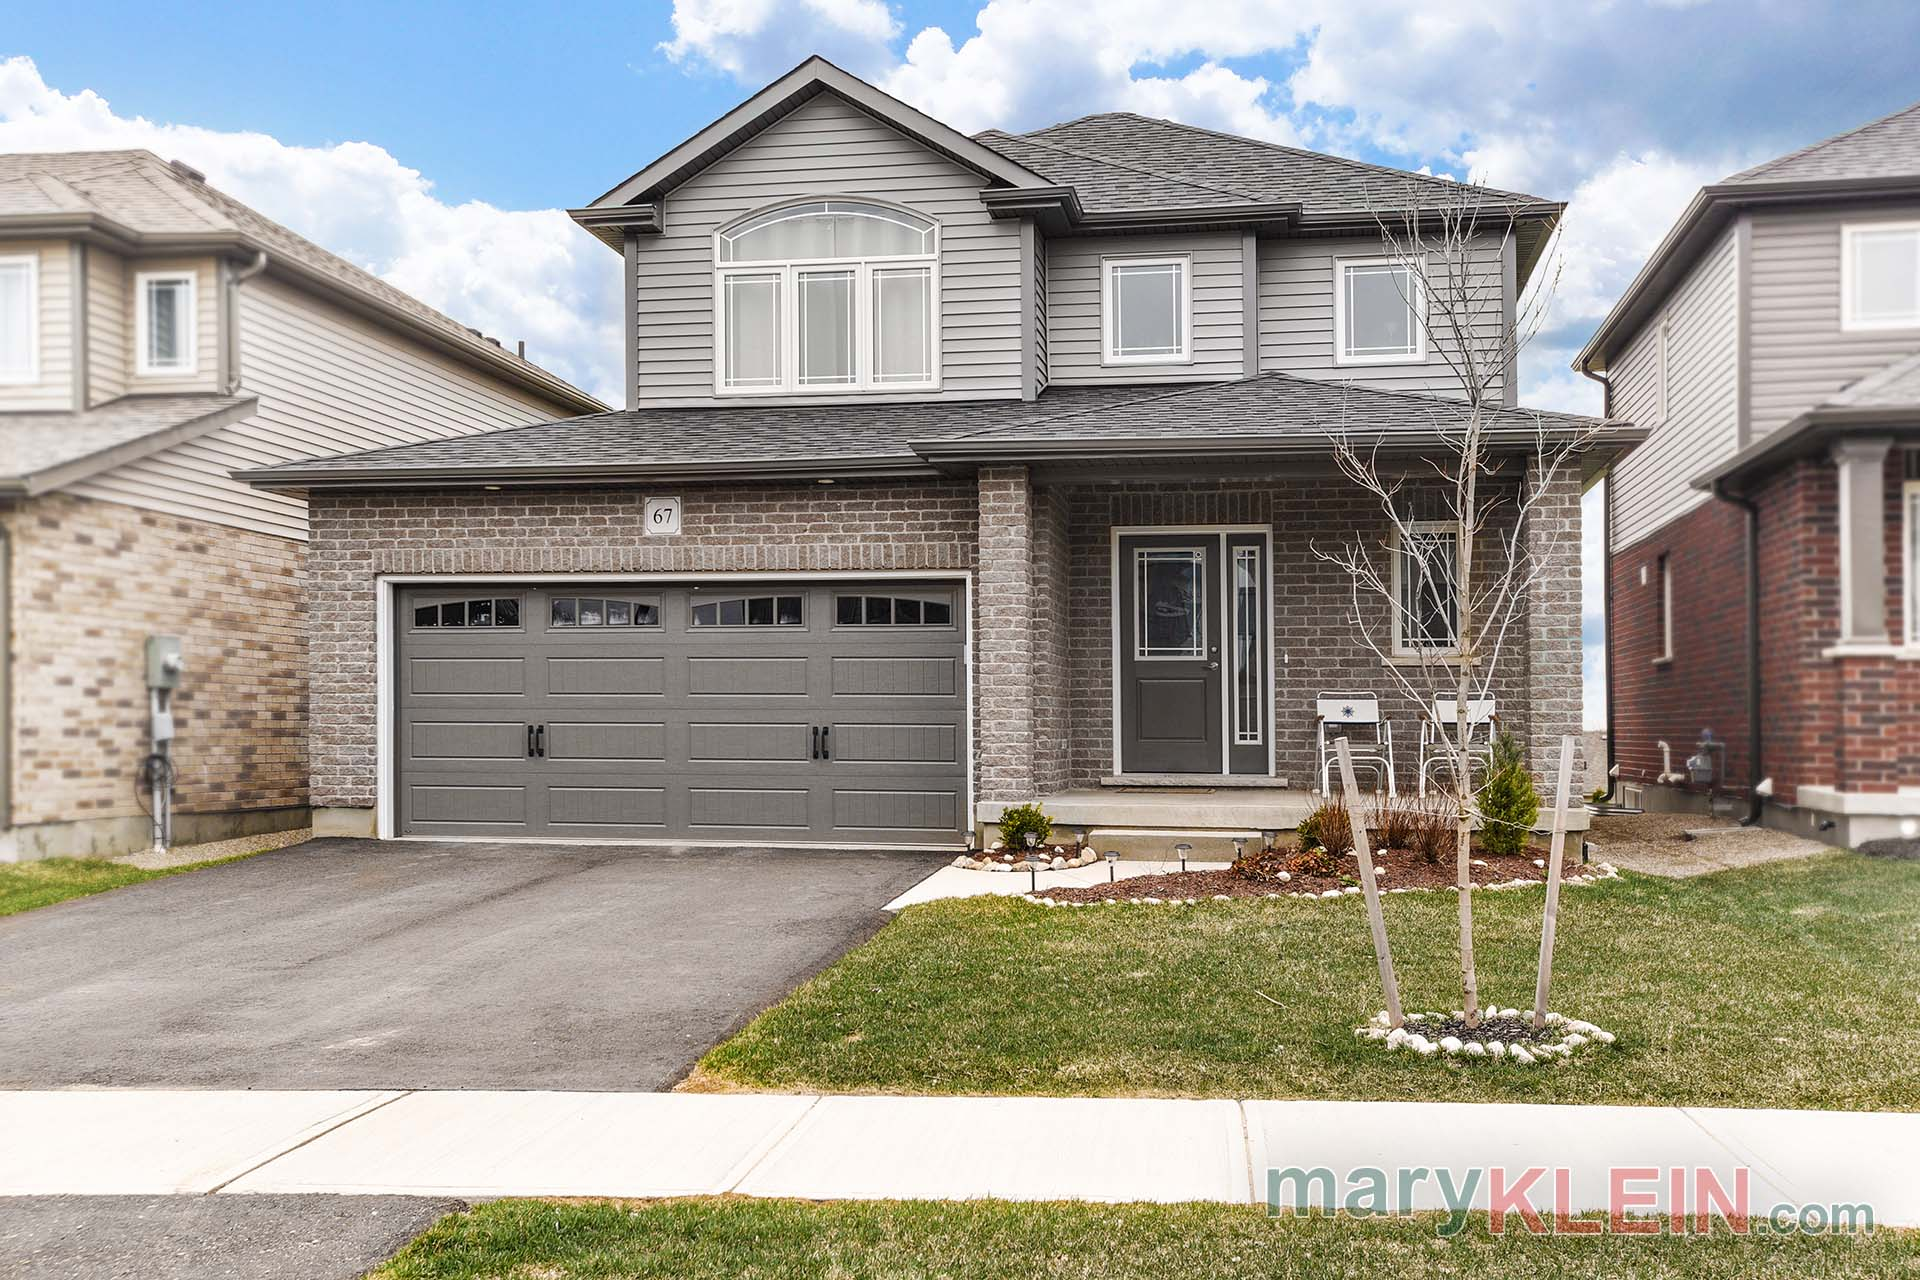 67 Taylor Drive, Grand Valley, Home For Sale, Mary Klein, Kait Klein